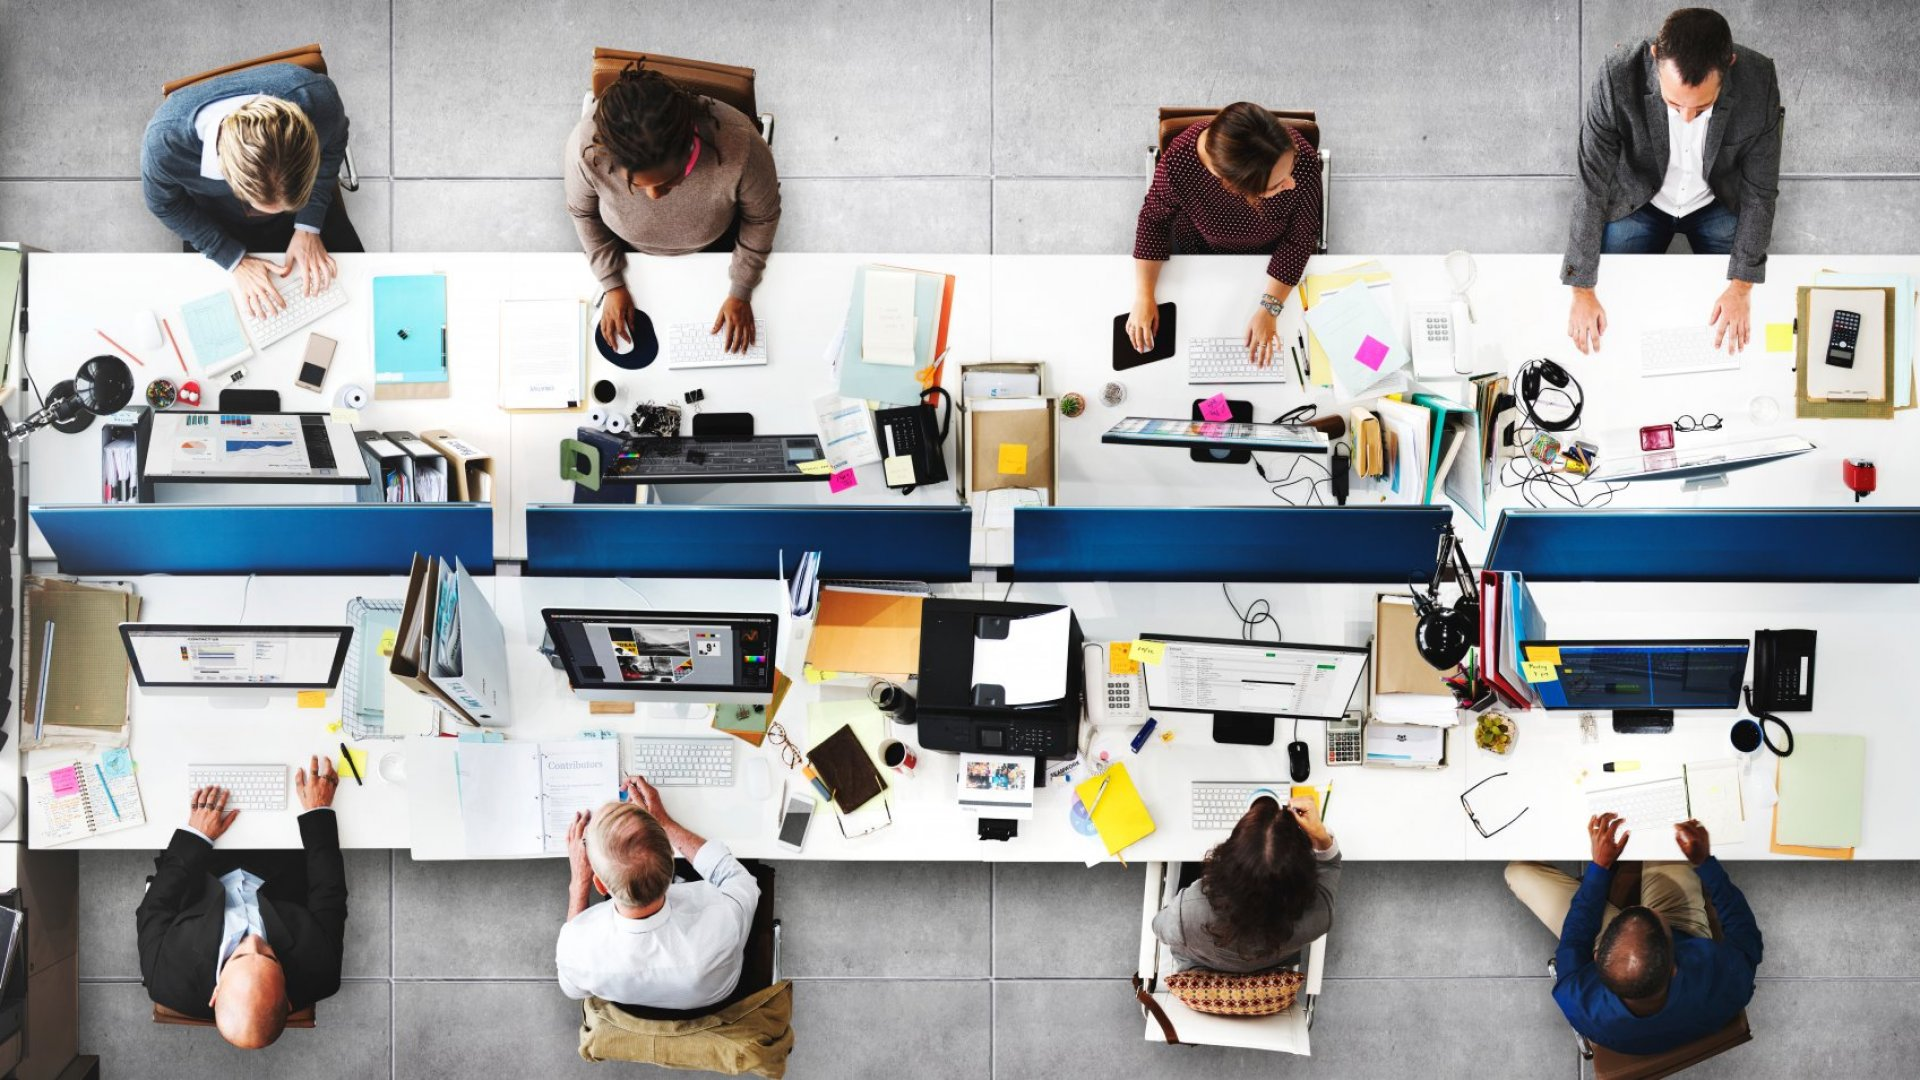 Make Your Workplace More Productive With These 5 Tech Tools